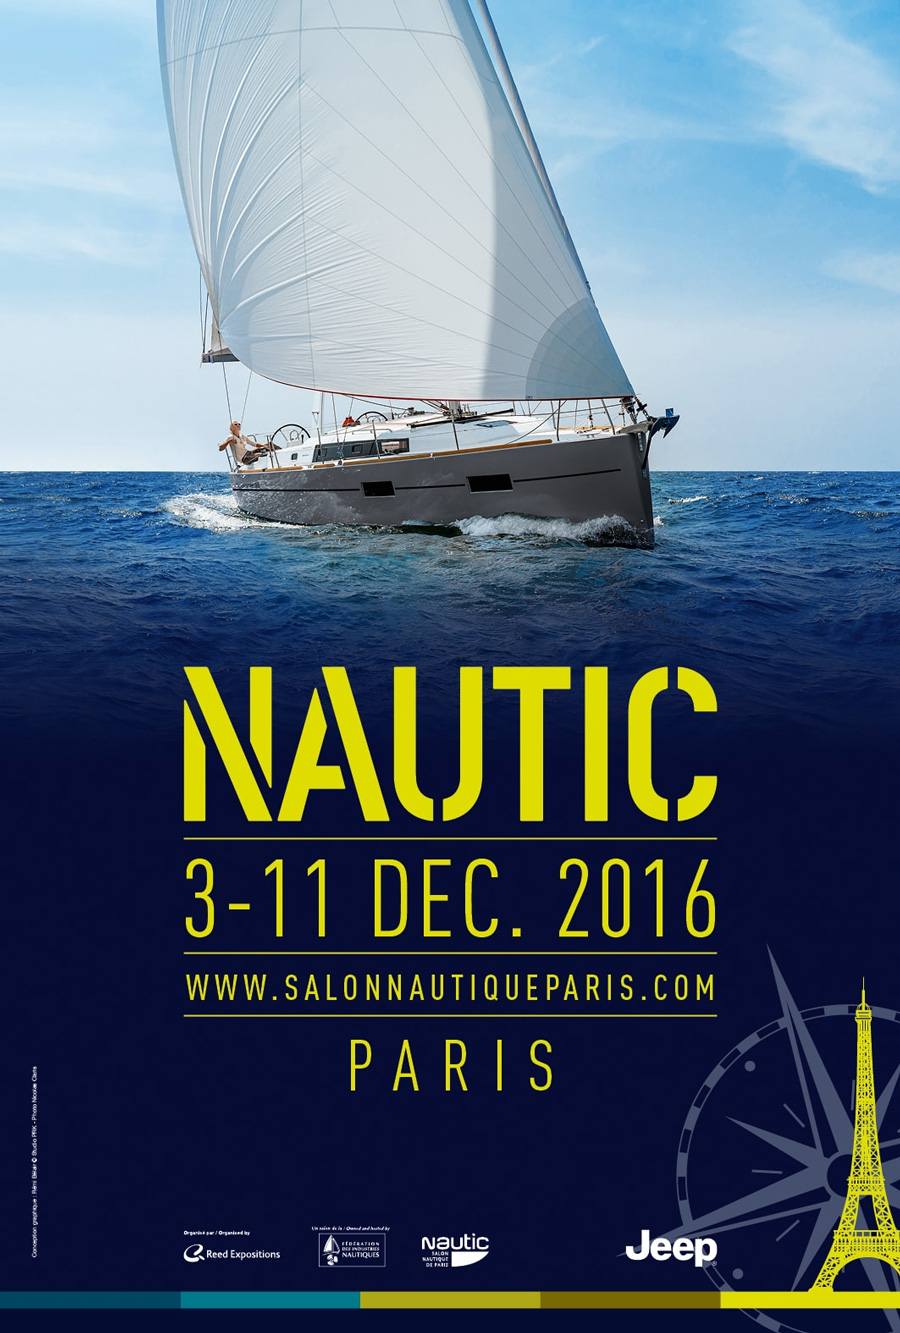 Salon nautique de paris 2016 metalu for Salon bio paris 2016